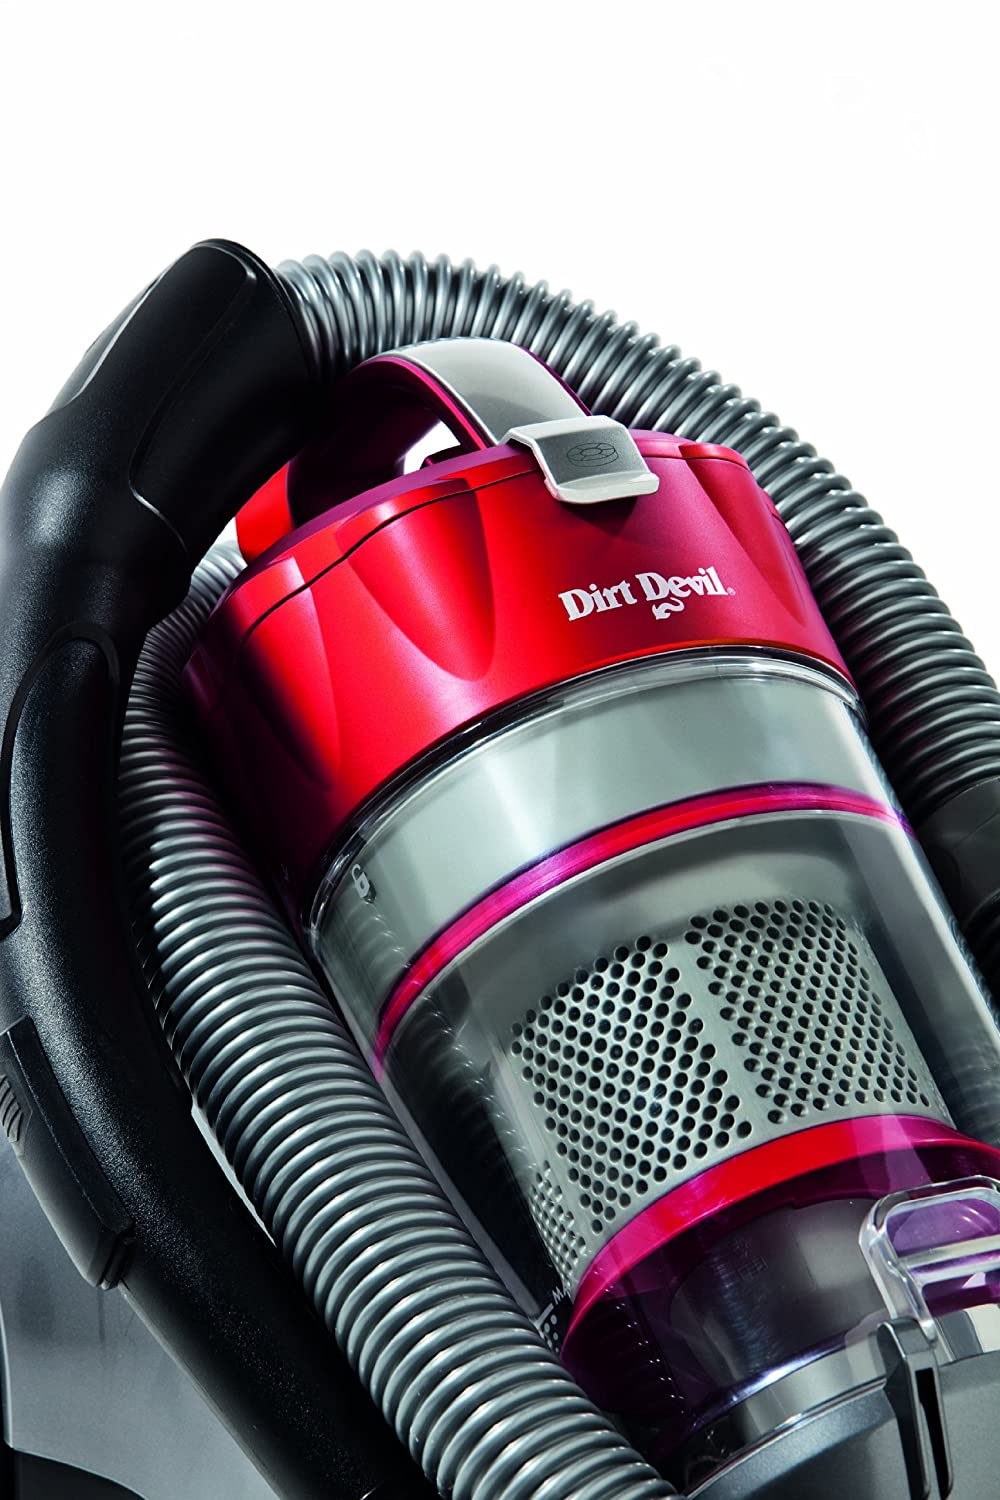 Dirt Devil M 5036-4 Infinity VS8 Turbo - Aspirador sin saco con sistema multiciclo (1600 W), color rojo: Amazon.es: Hogar